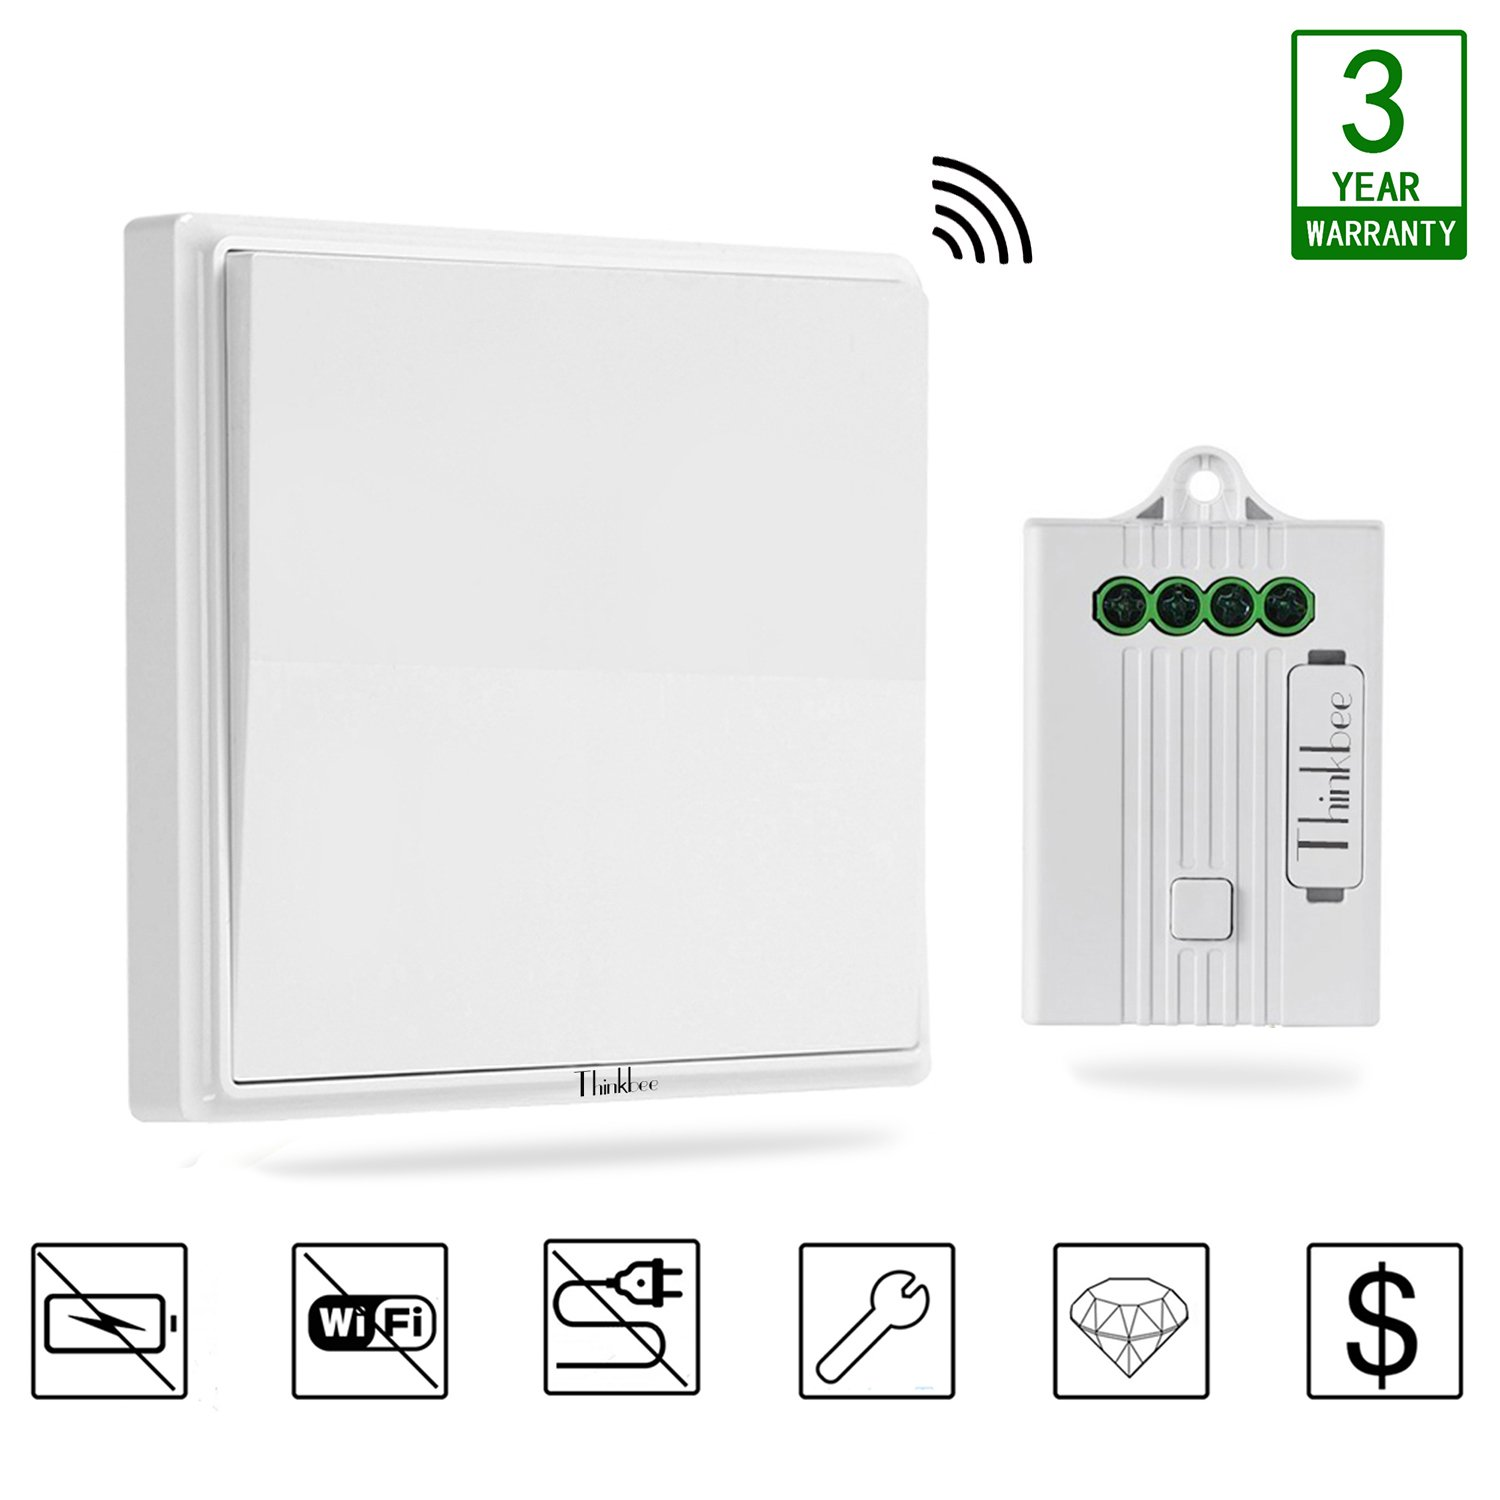 Thinkbee Wireless light Switch Kit, 2017 newest style. Move or add a ...